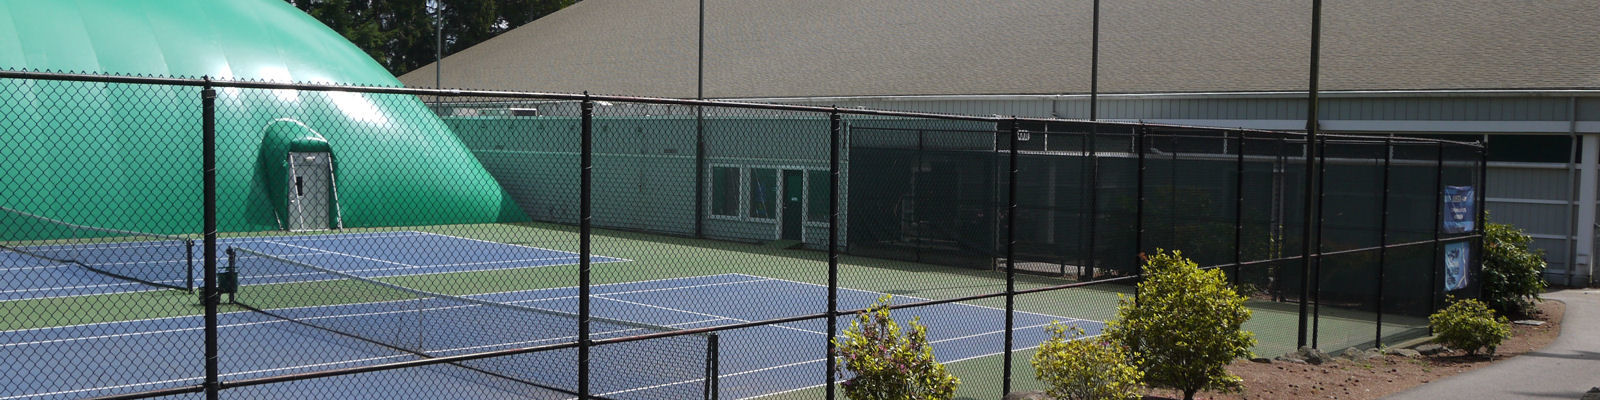 Robinswood Tennis Center - outside